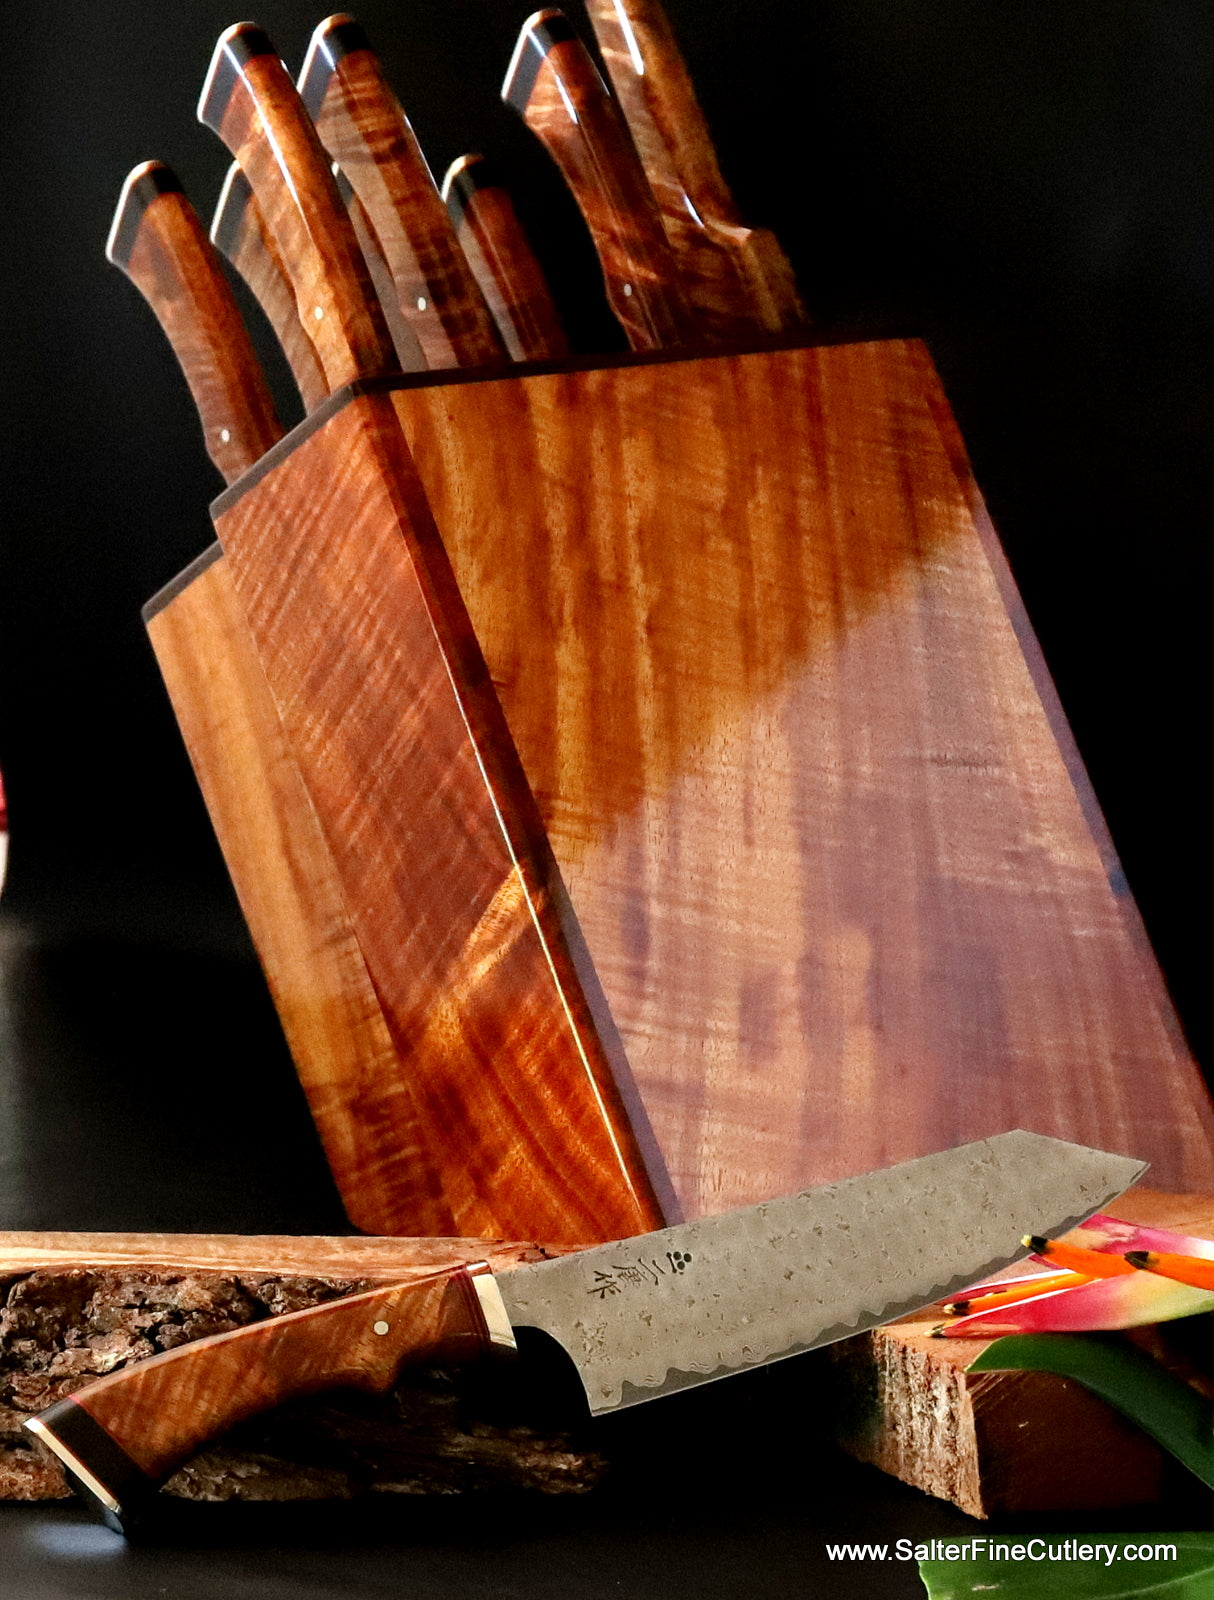 Large luxury handmade chef knife set in knife block by Salter Fine Cutlery of Hawaii